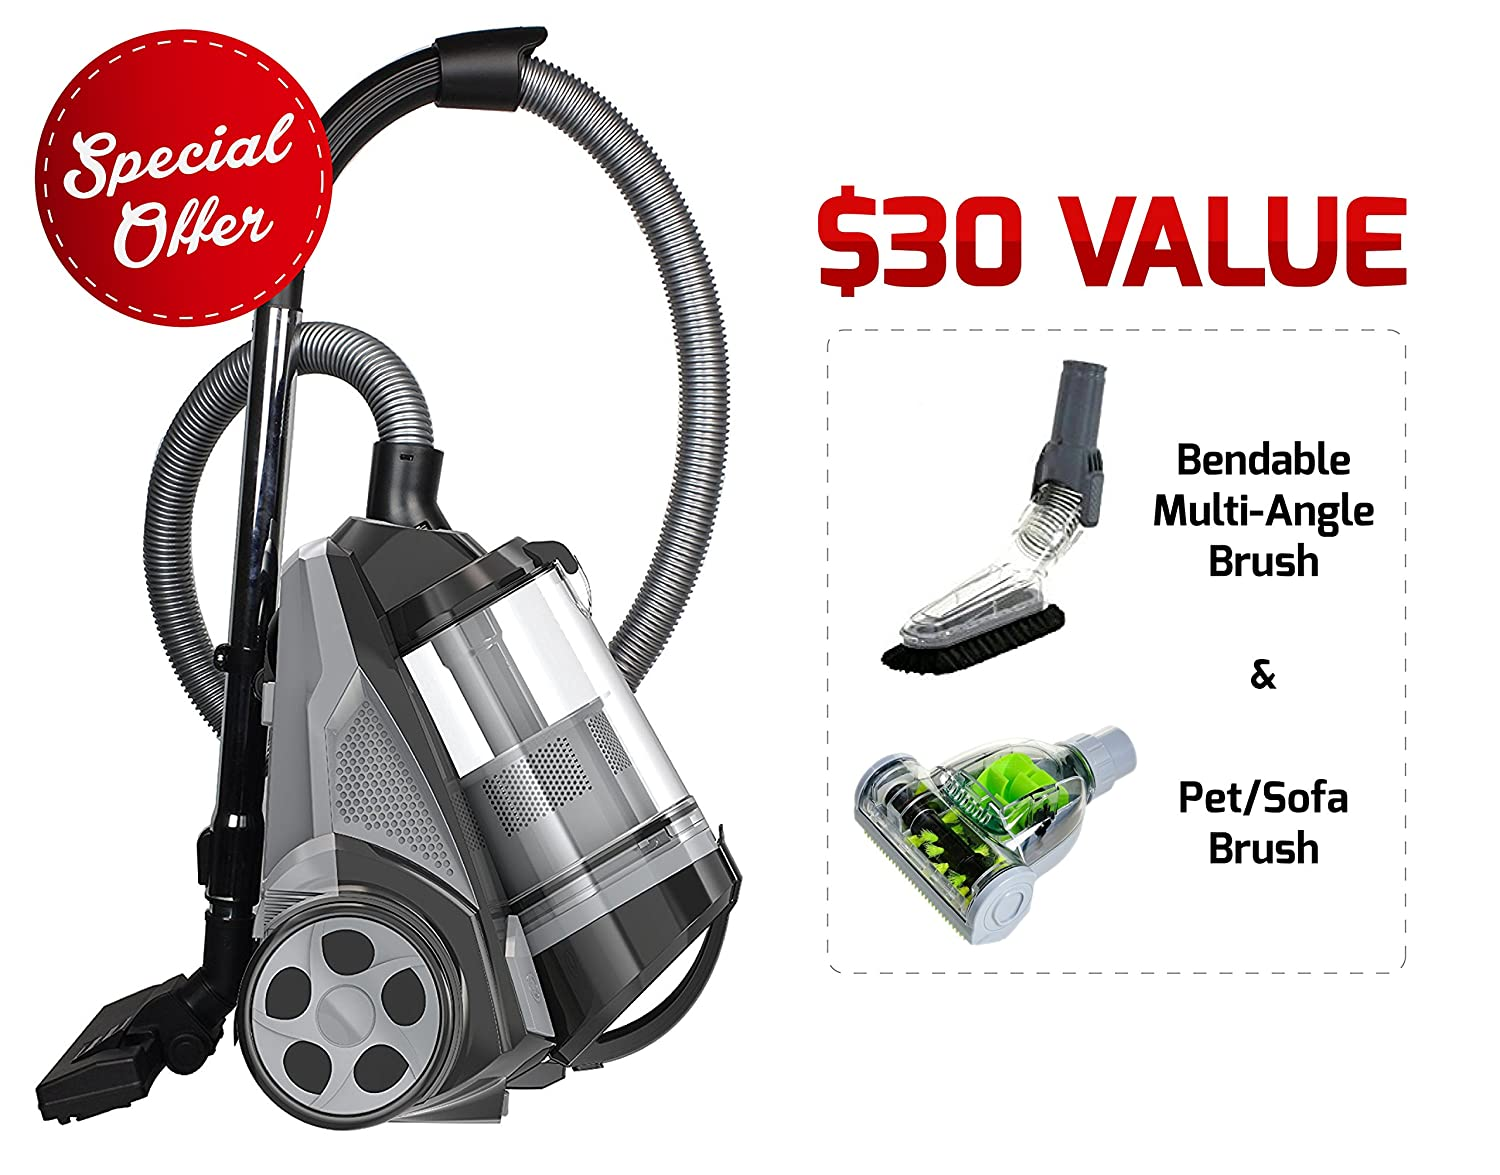 Ovente Electric Bagless Canister Vacuum, HEPA Filtration System, Automatic Cable Rewind, Floor & Furniture Nozzle, Pet/Sofa Brush, Multi-Angle Brush, Black (ST2620B)